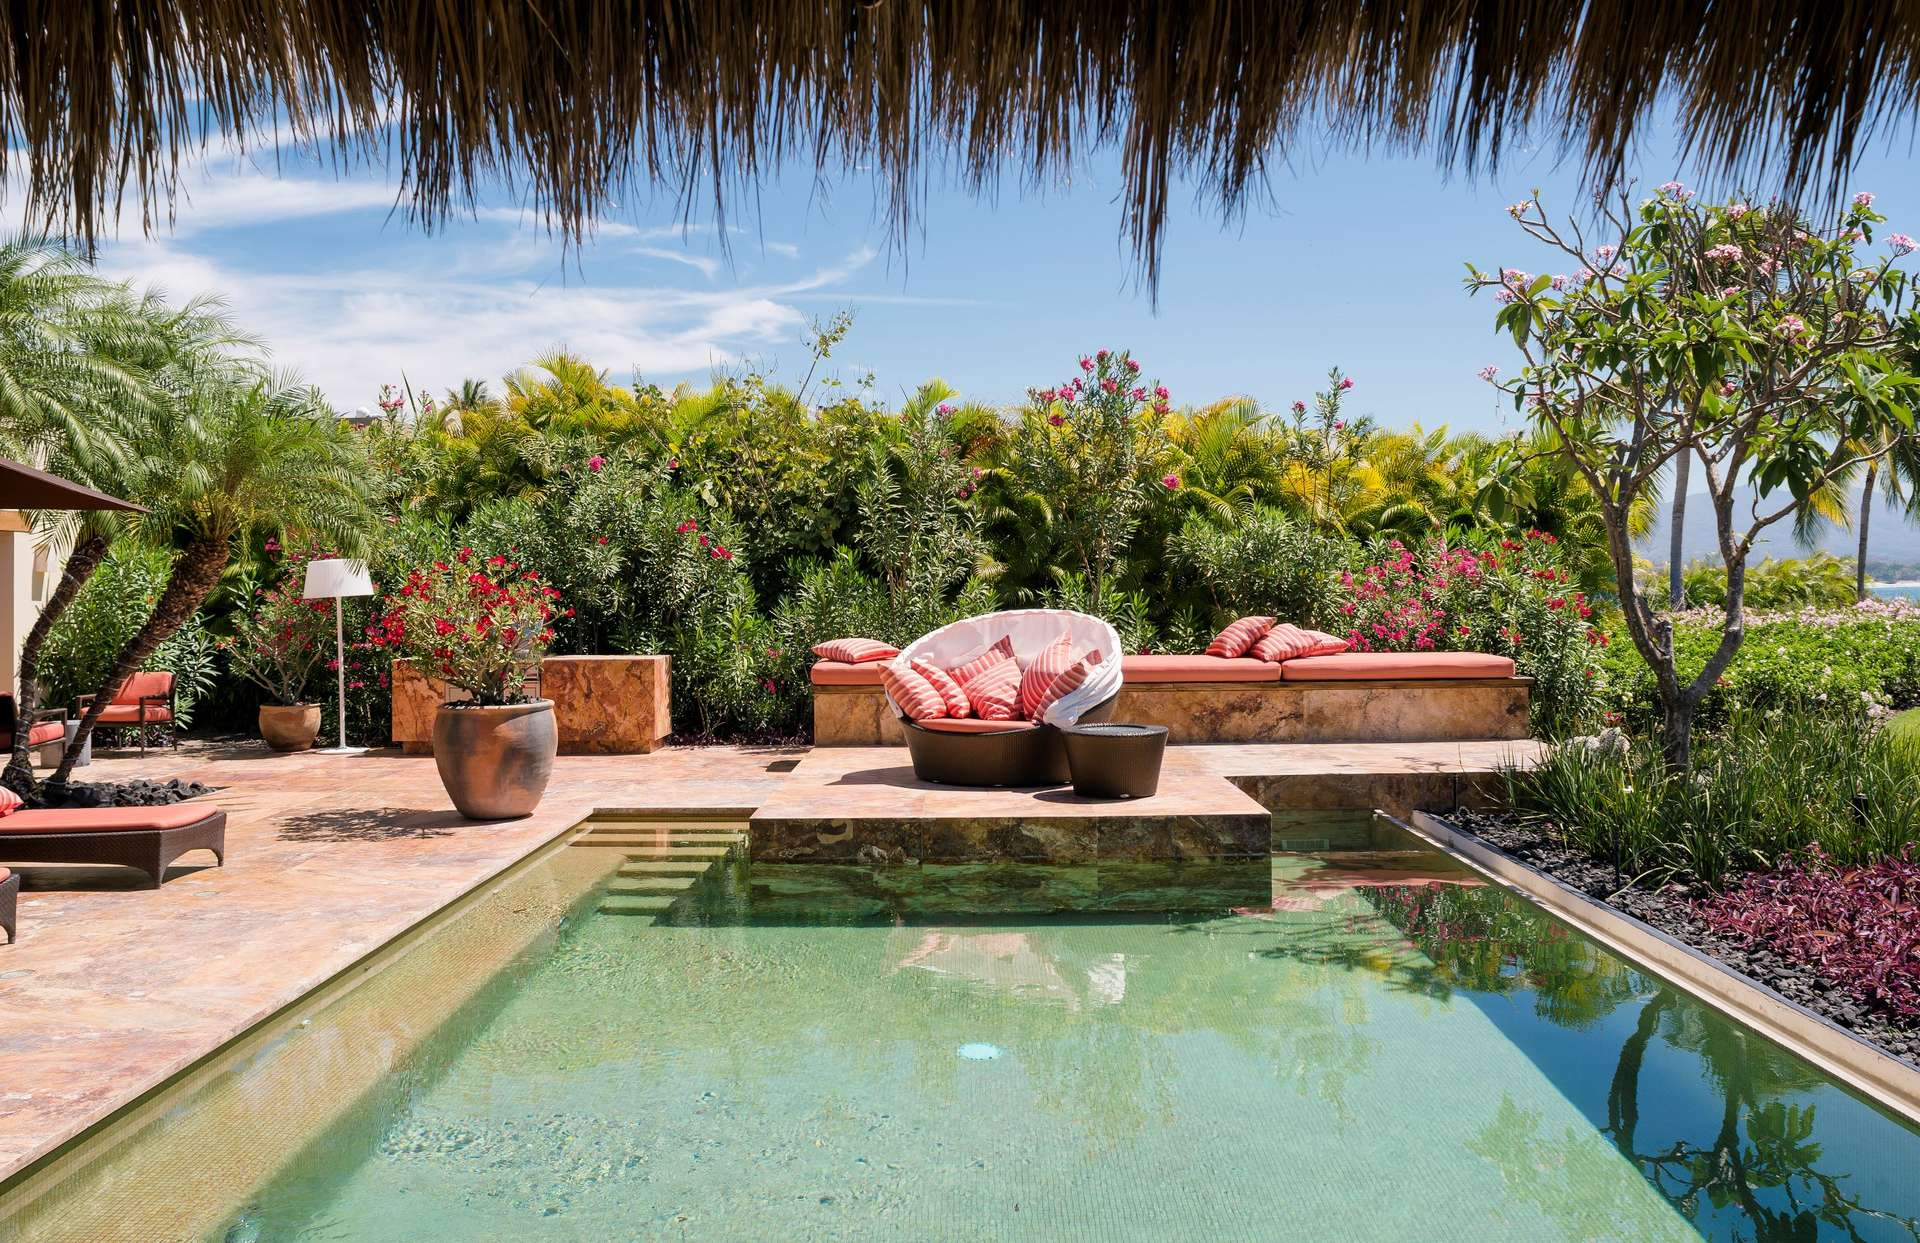 Luxury vacation rentals mexico - Punta mita - Lagos delmar - No location 4 - Casa Cavallino - Image 1/12